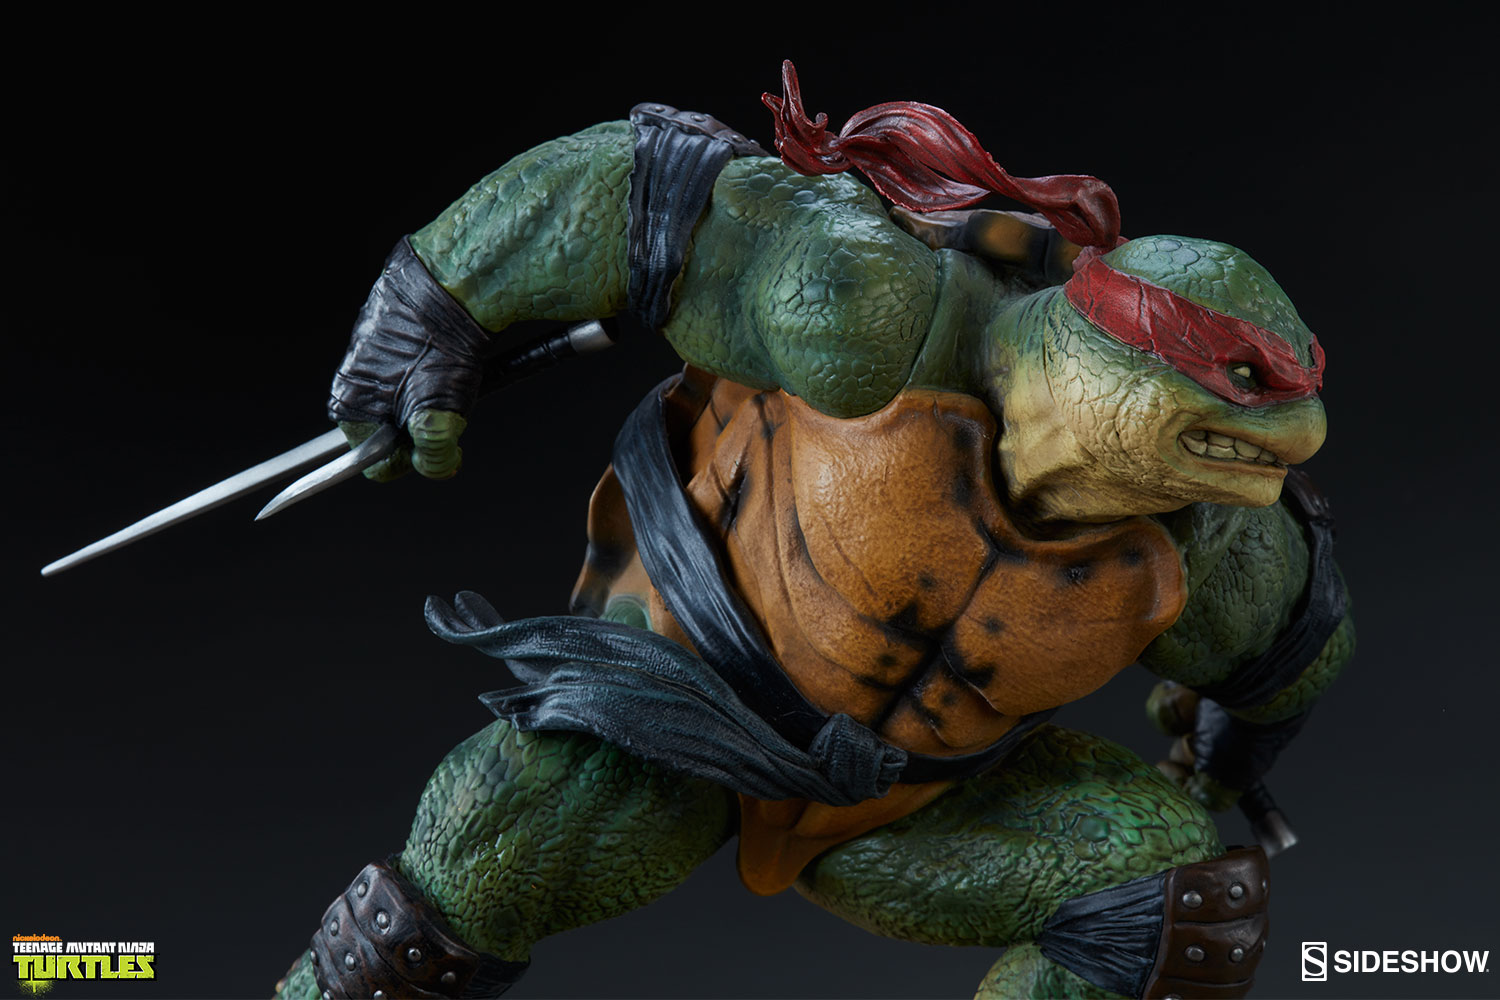 tmnt raphael statue by sideshow collectibles sideshow collectibles